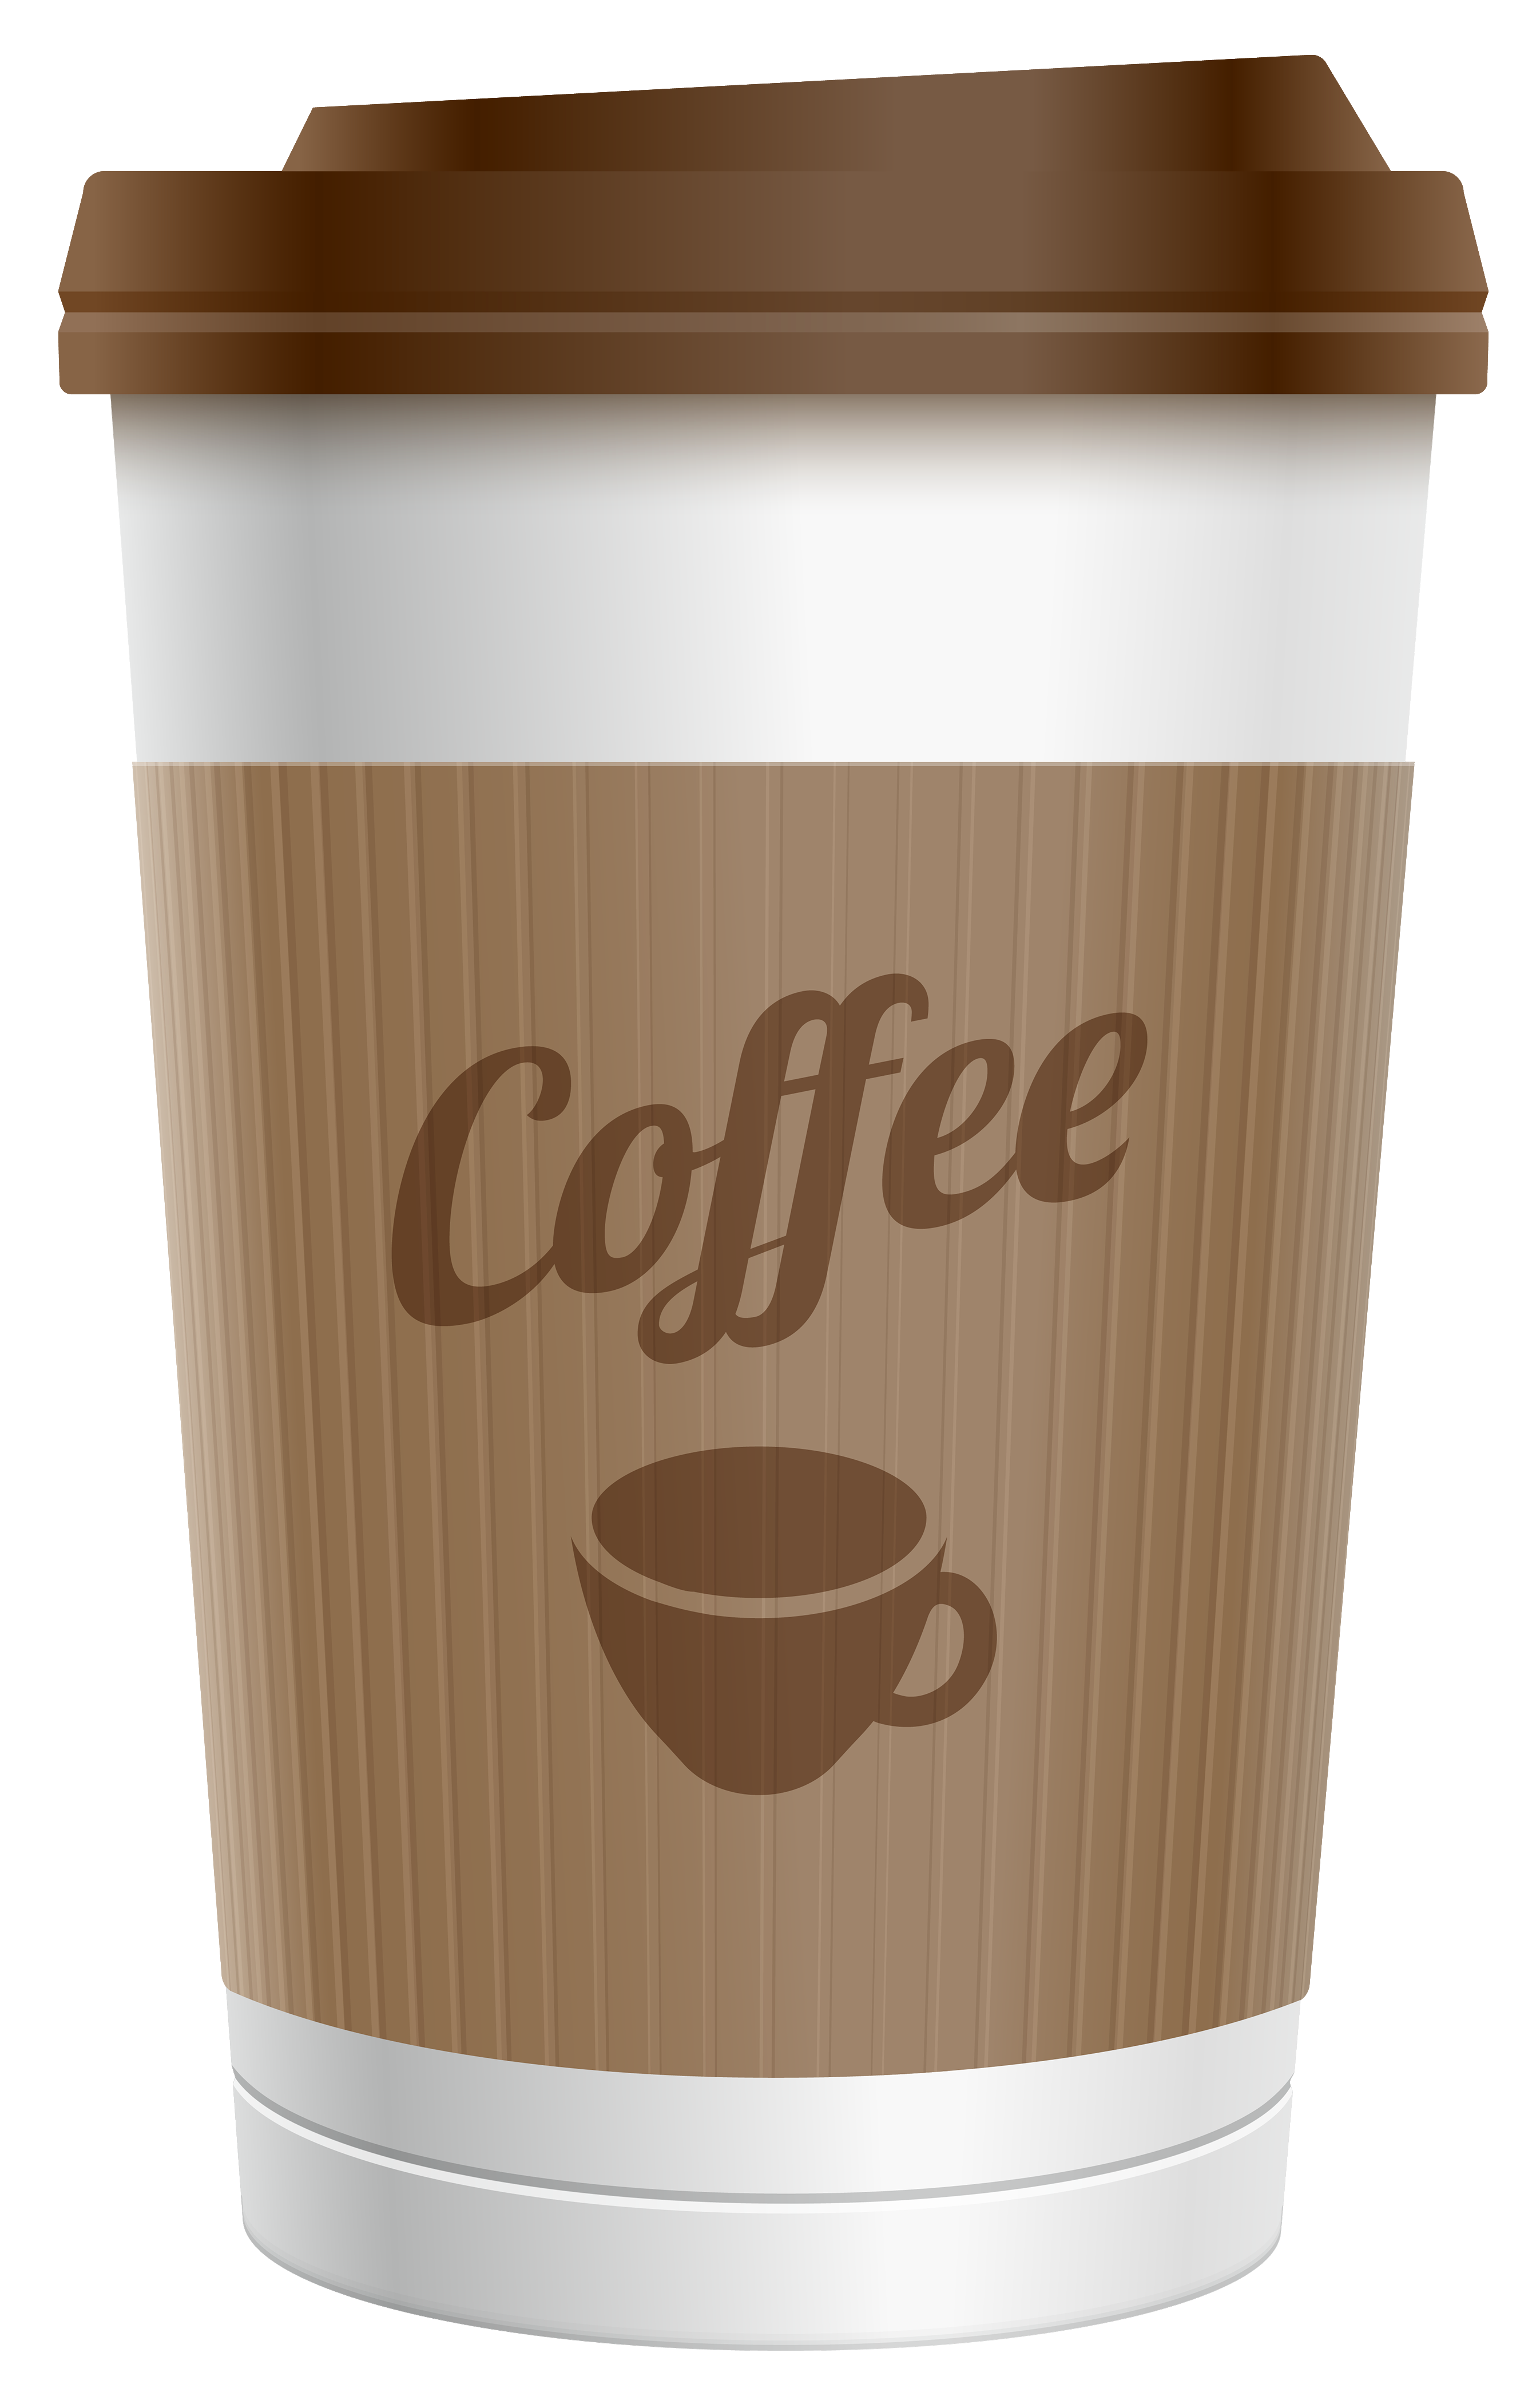 Coffee cups heart cup. Drinks clipart takeaway